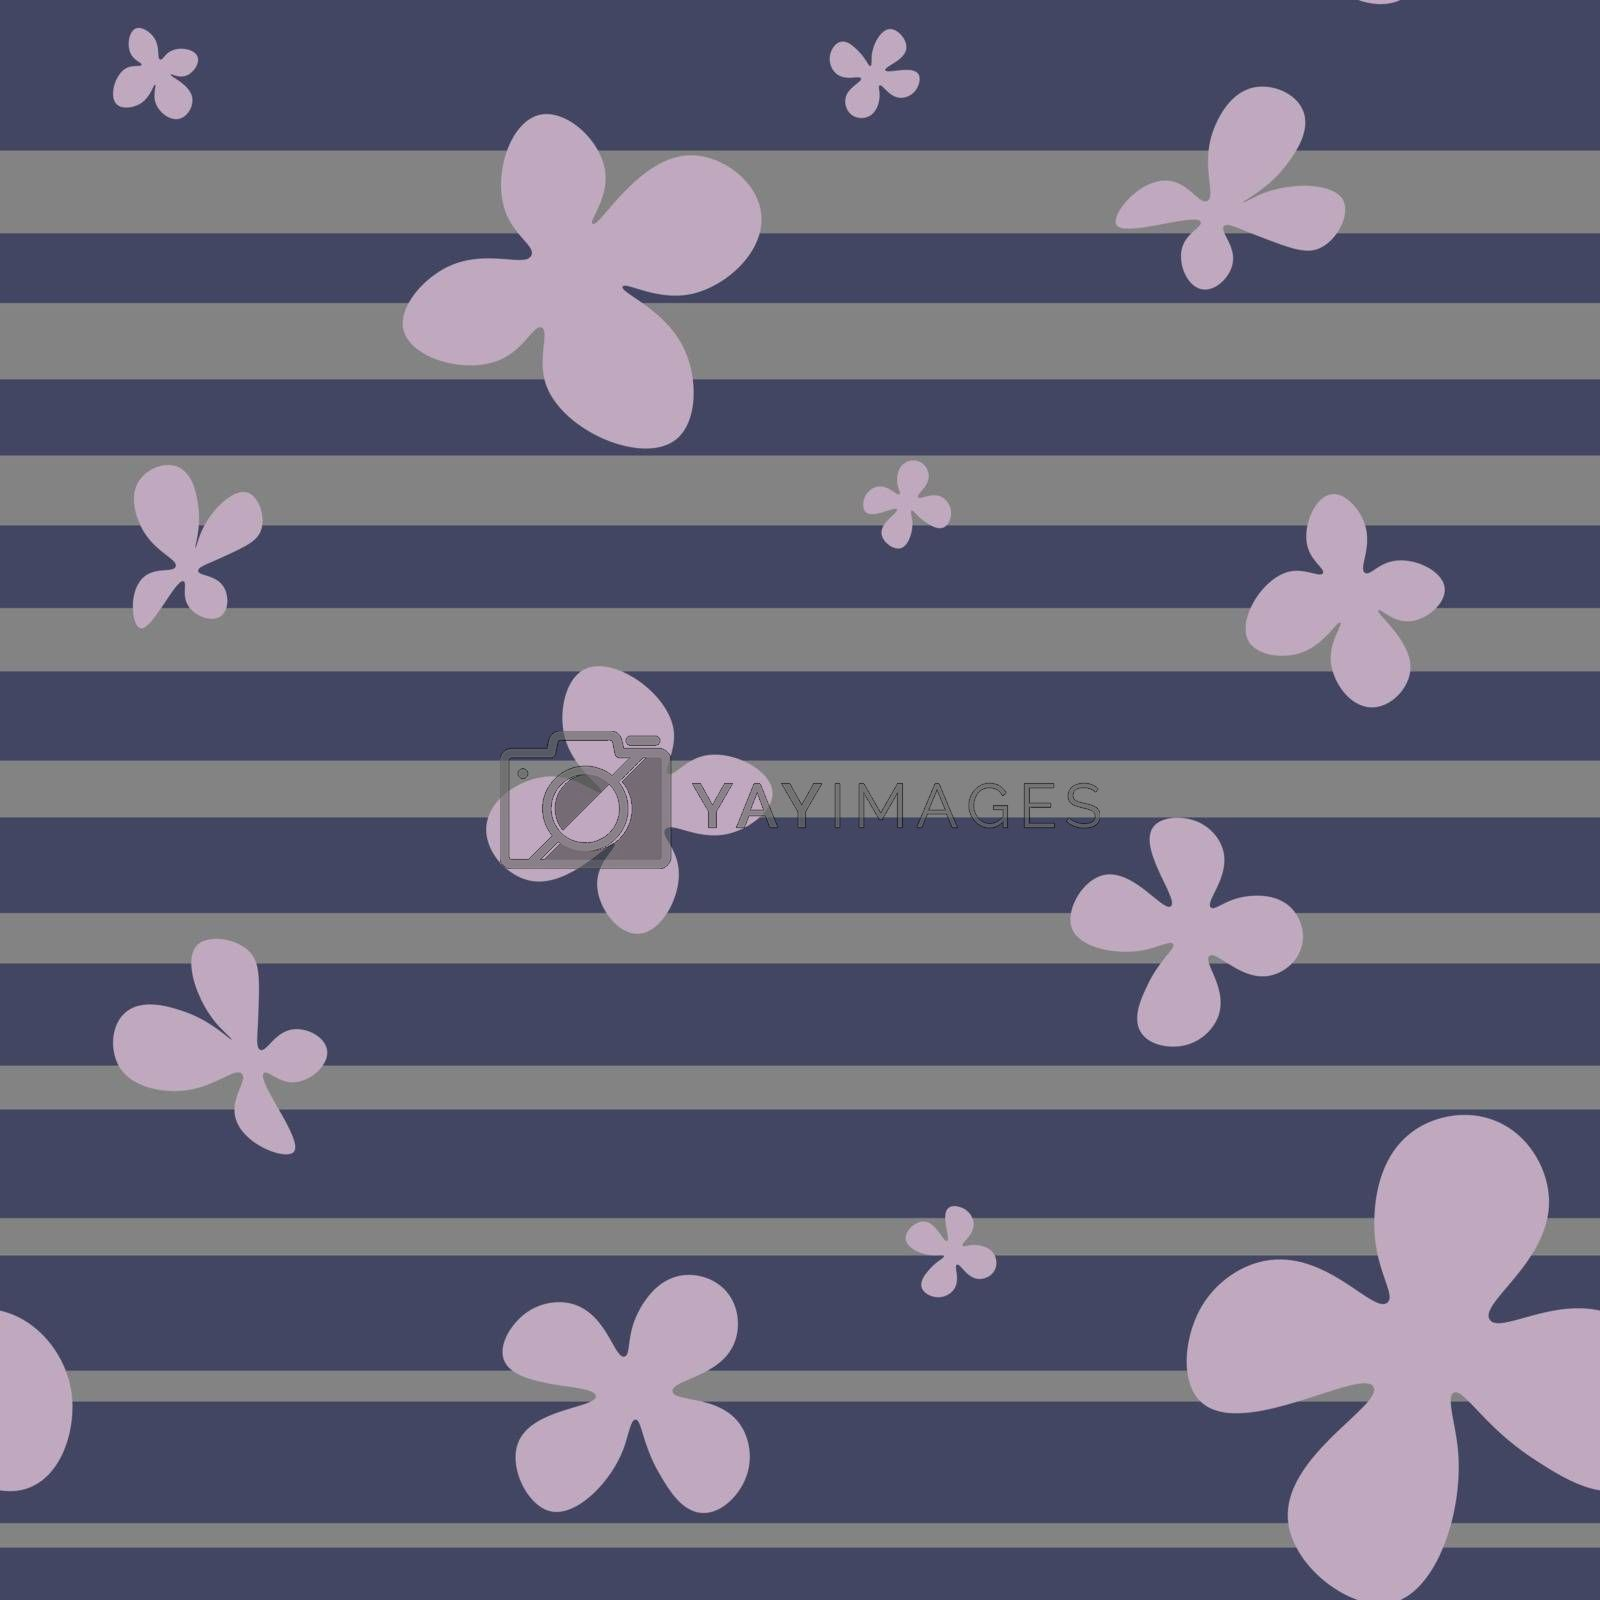 Seamless pattern in minimalistic style with simple lilac flowers on dark blue striped background